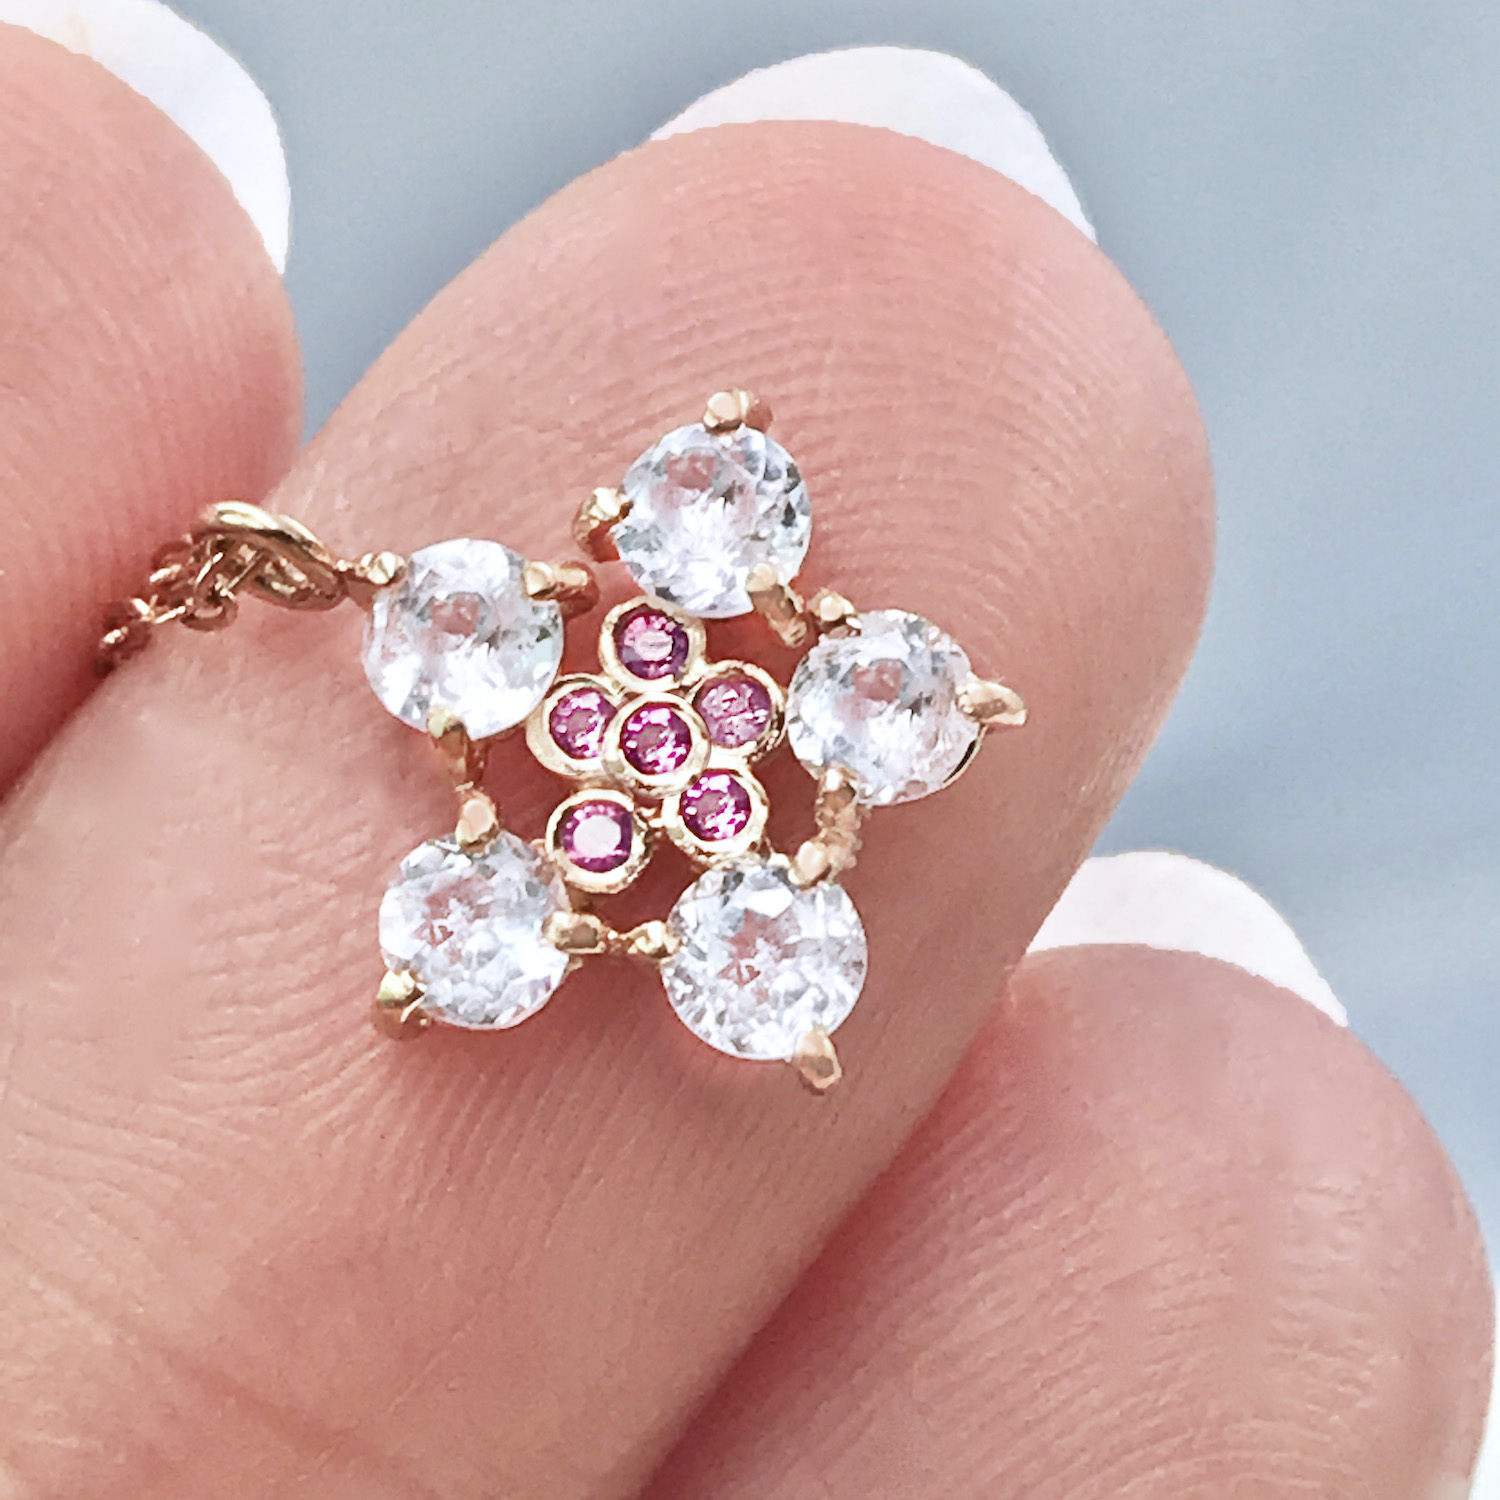 Forget-Me-Not-White-Zircon-Pink-Sapphire-Pendant-Necklace-14k-18k-JeweLyrie_8301